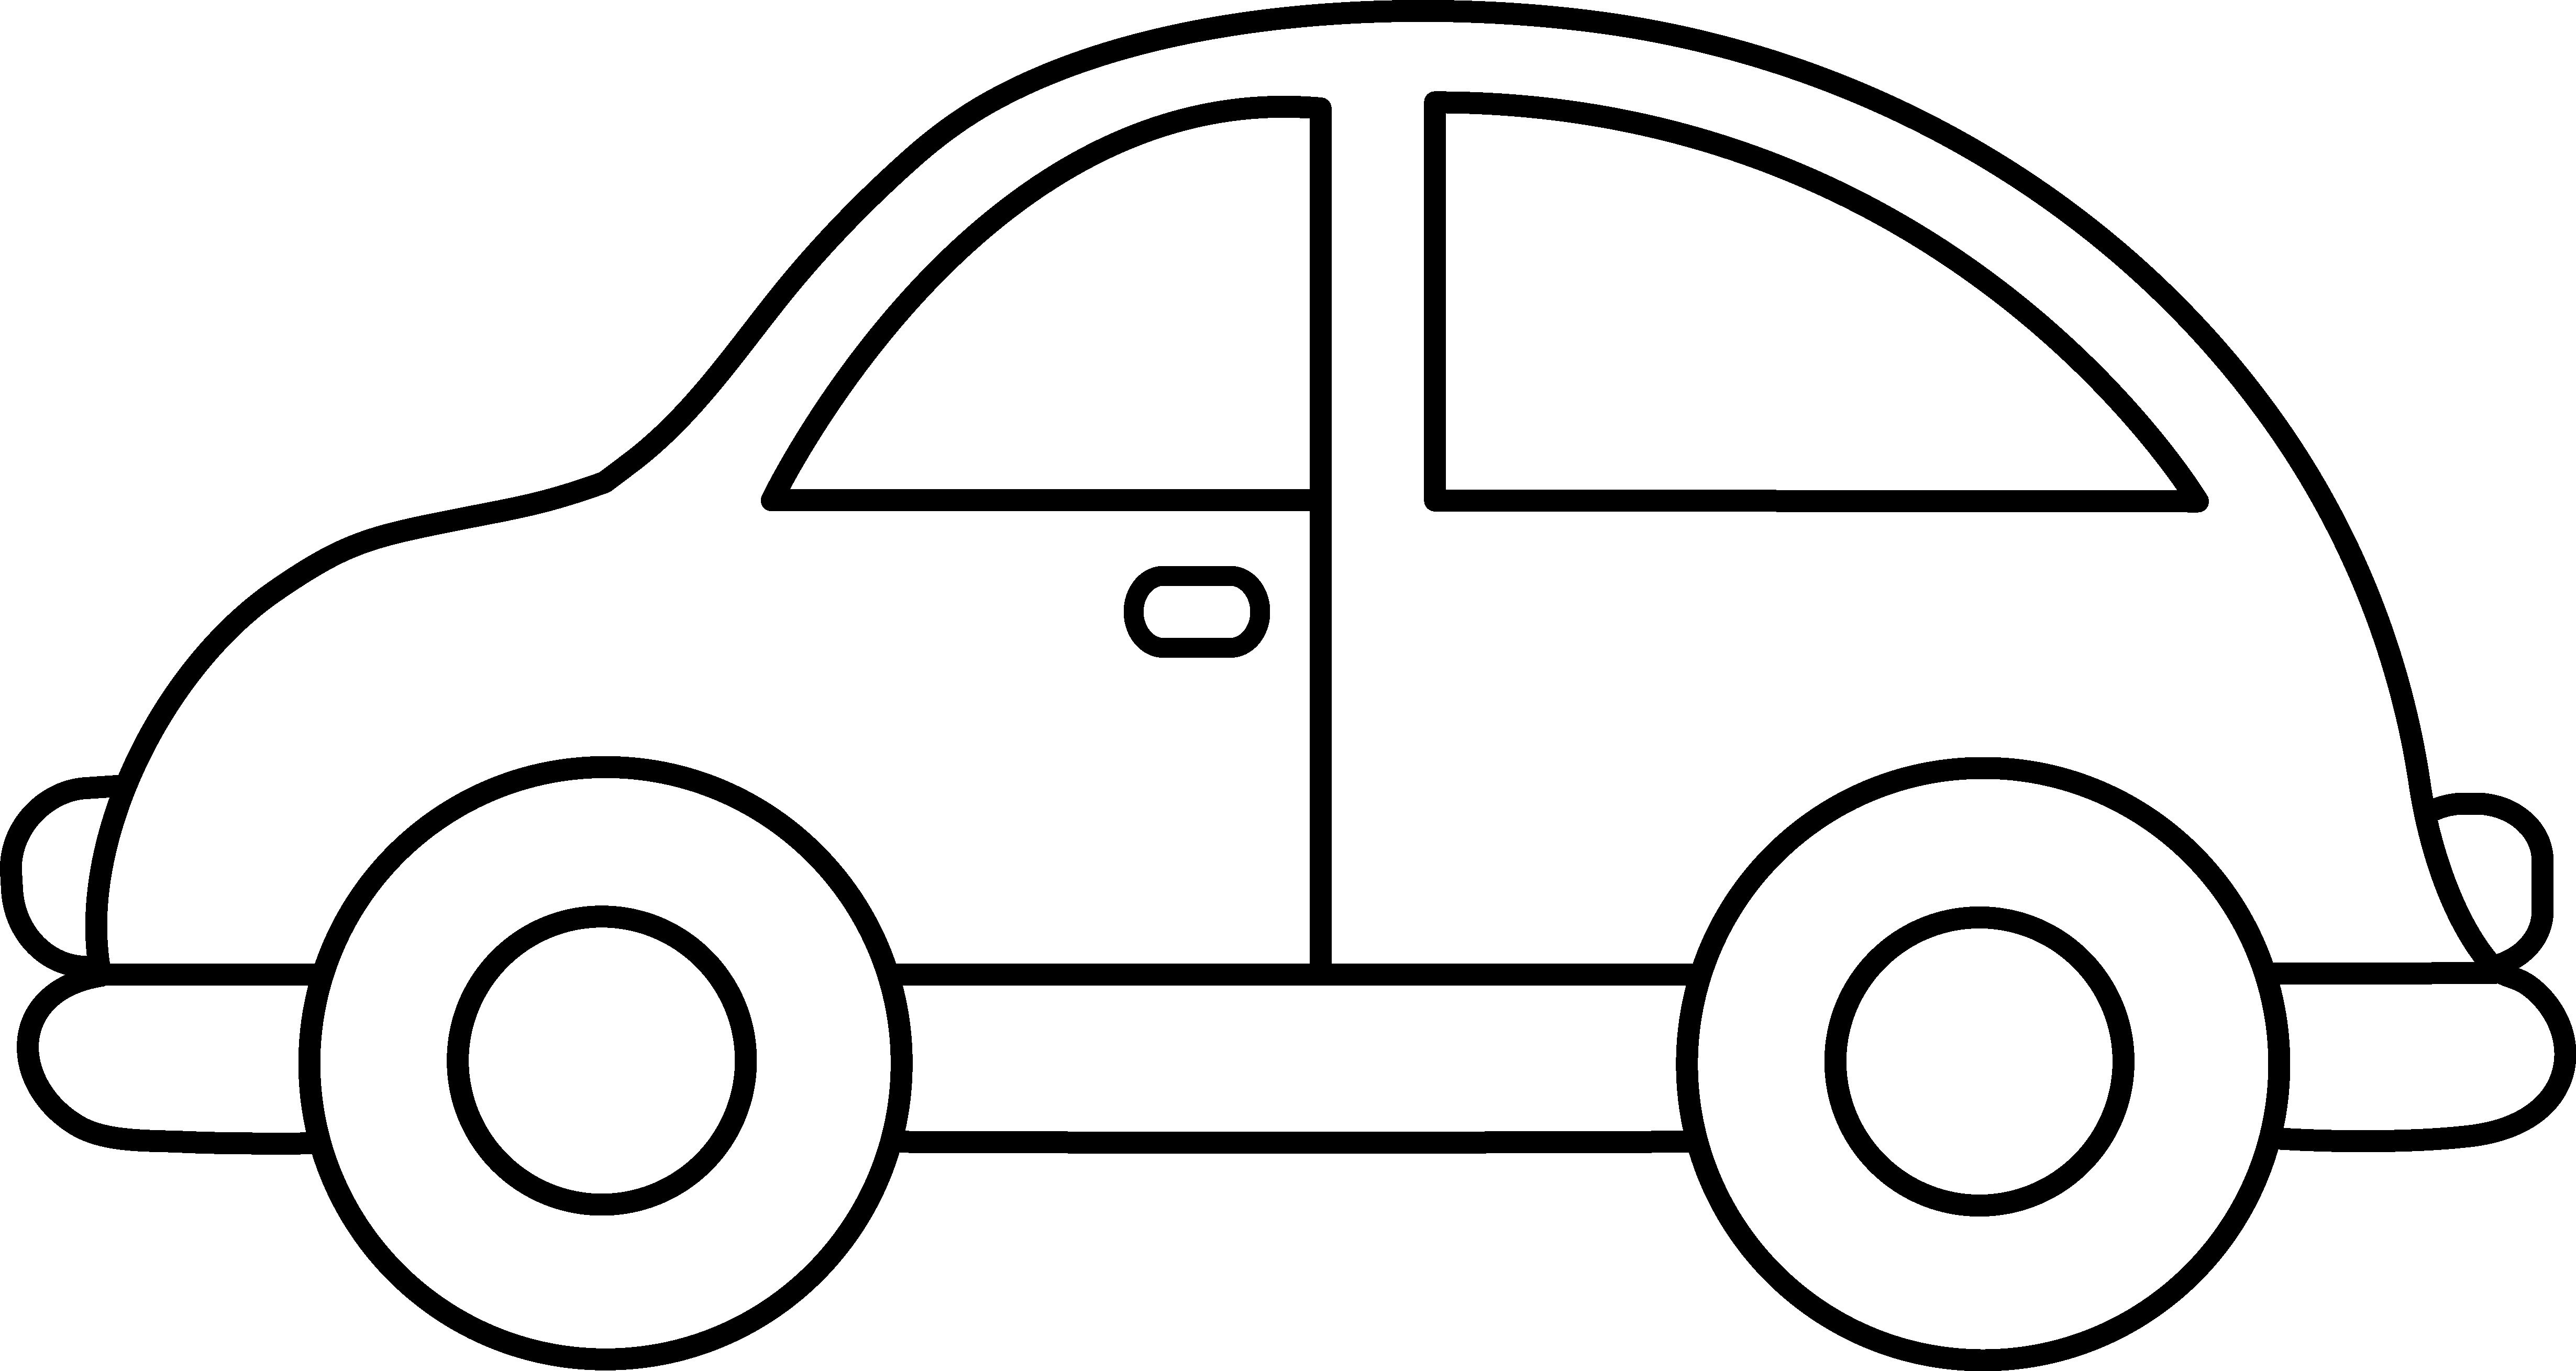 4919x2618 Toy Car Clip Art Black And White Back To School Cars Coloring